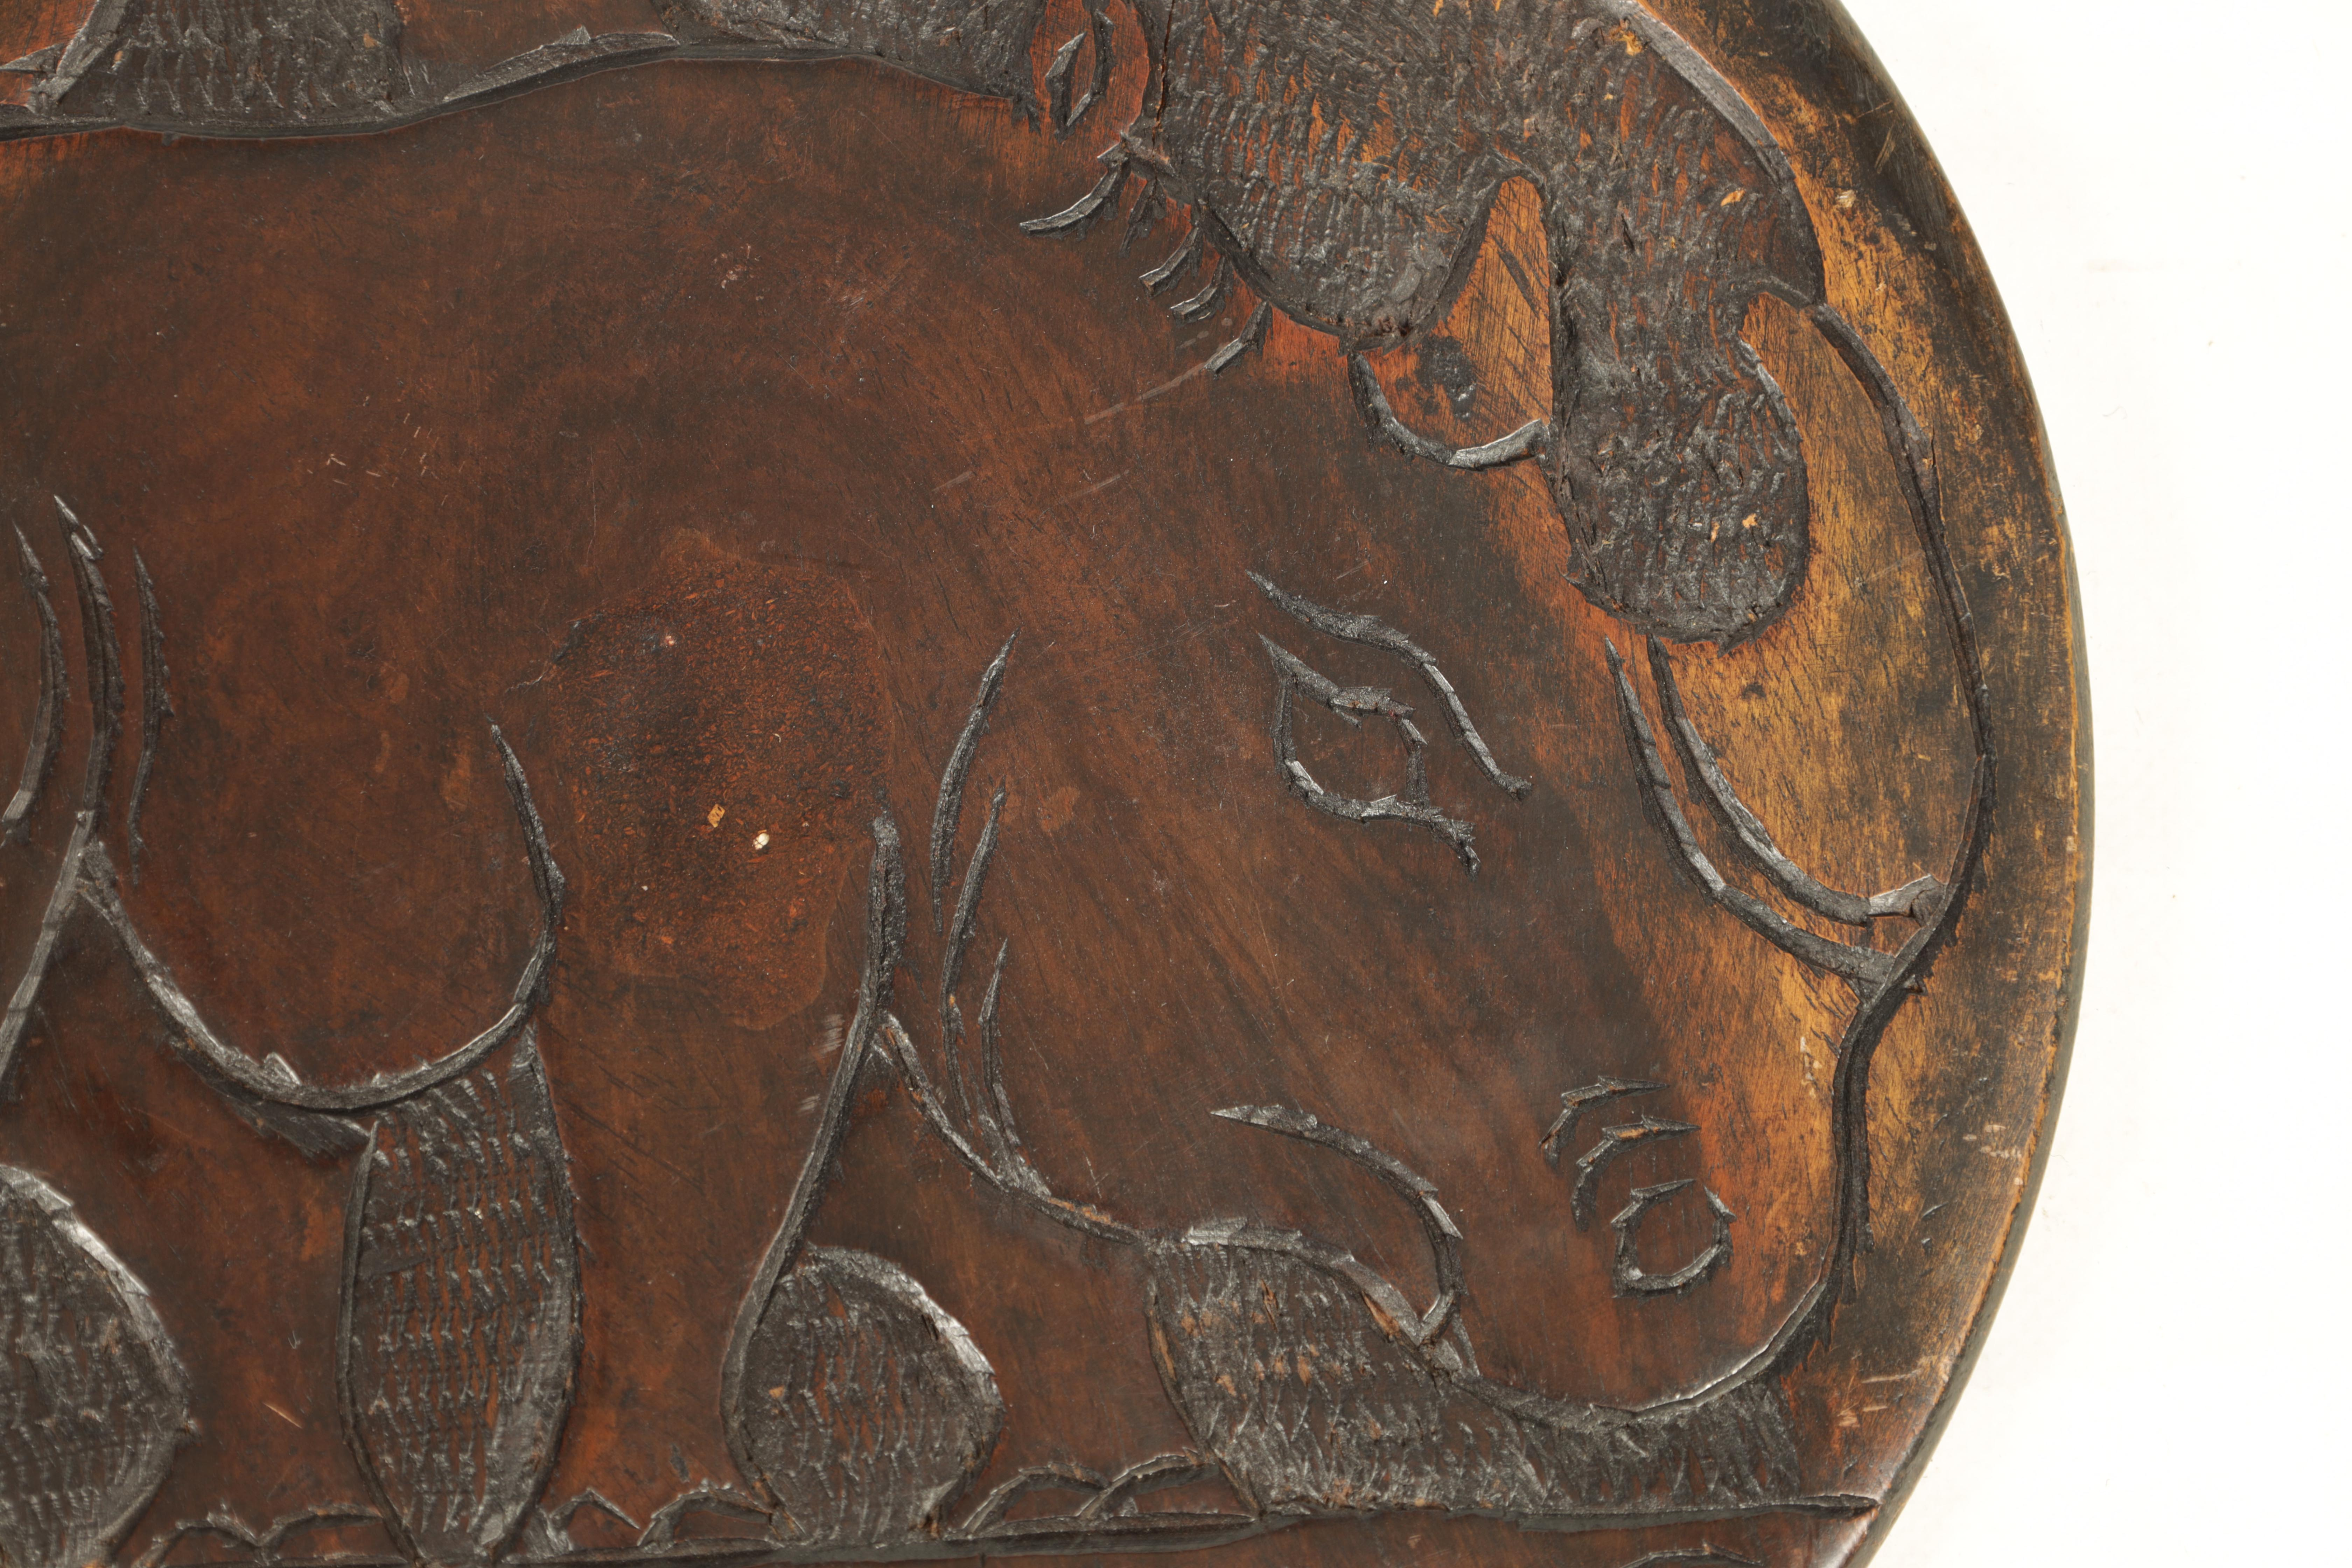 A LATE 19TH CENTURY AFRICAN HARDWOOD FOLDING TABLE the circular top relief carved with Rhinosorus - Image 6 of 7